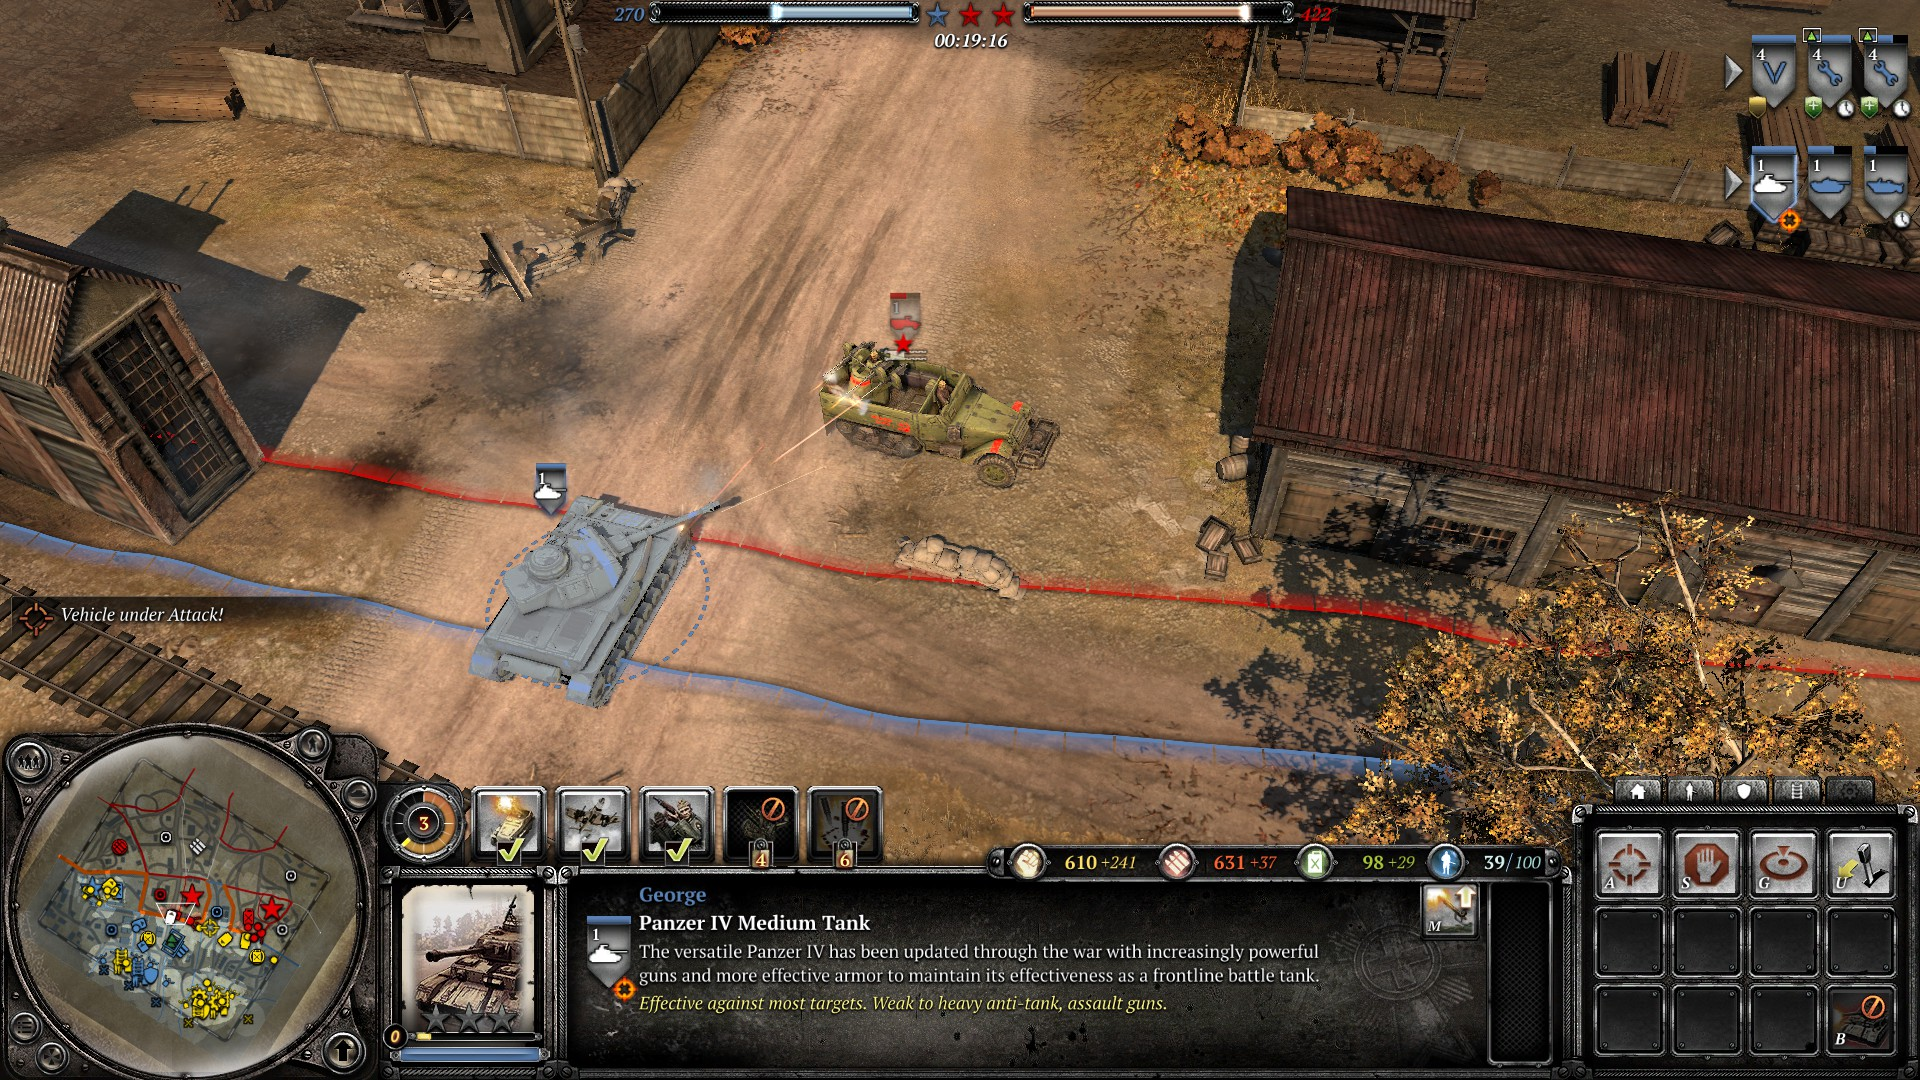 Company Of Heroes 2 Review A Shift To The Cold Eastern Front The Channelpro Network